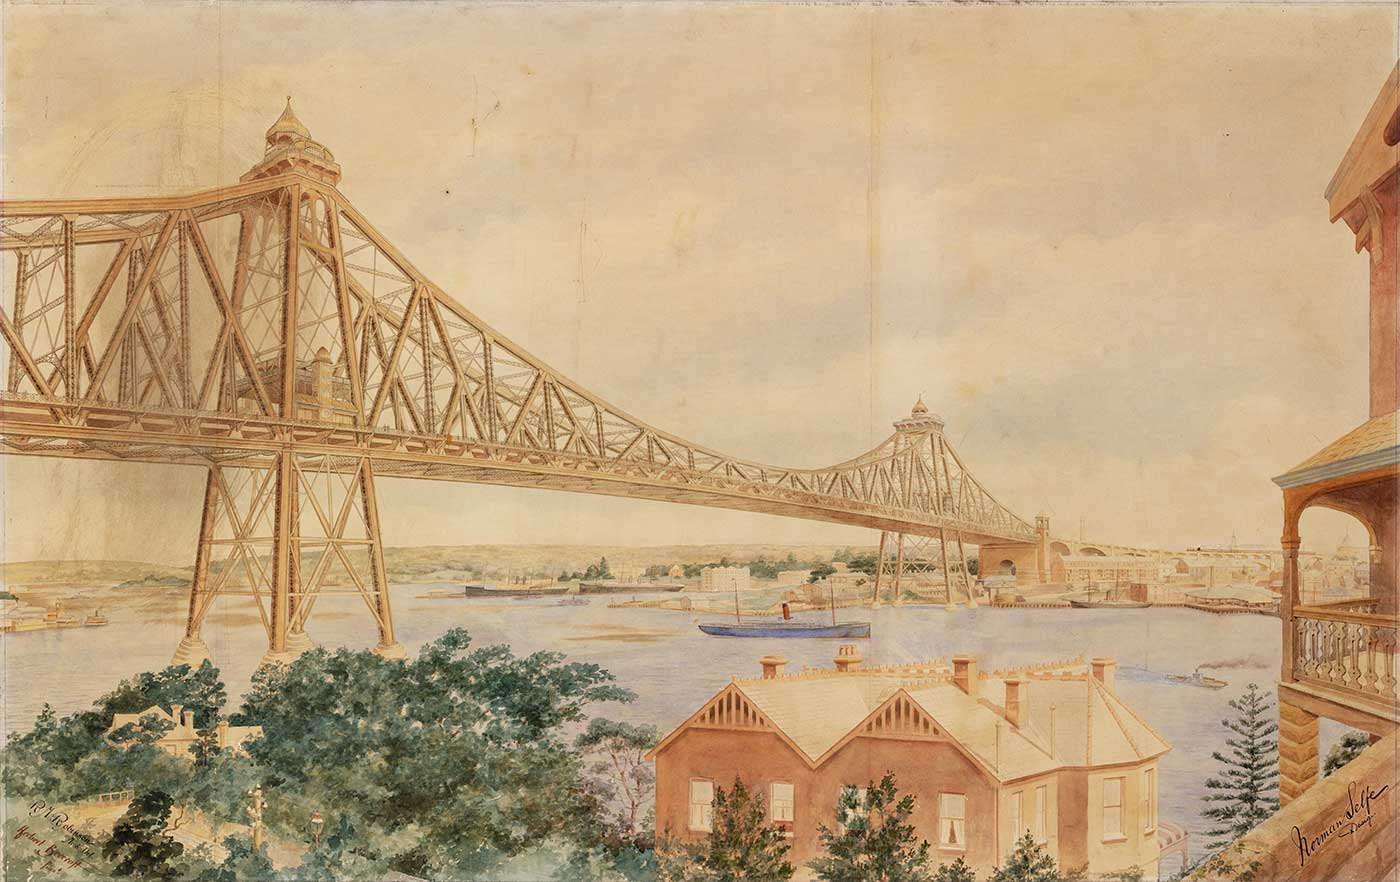 Pencil and watercolour image showing a bridge across a body of water. - click to view larger image